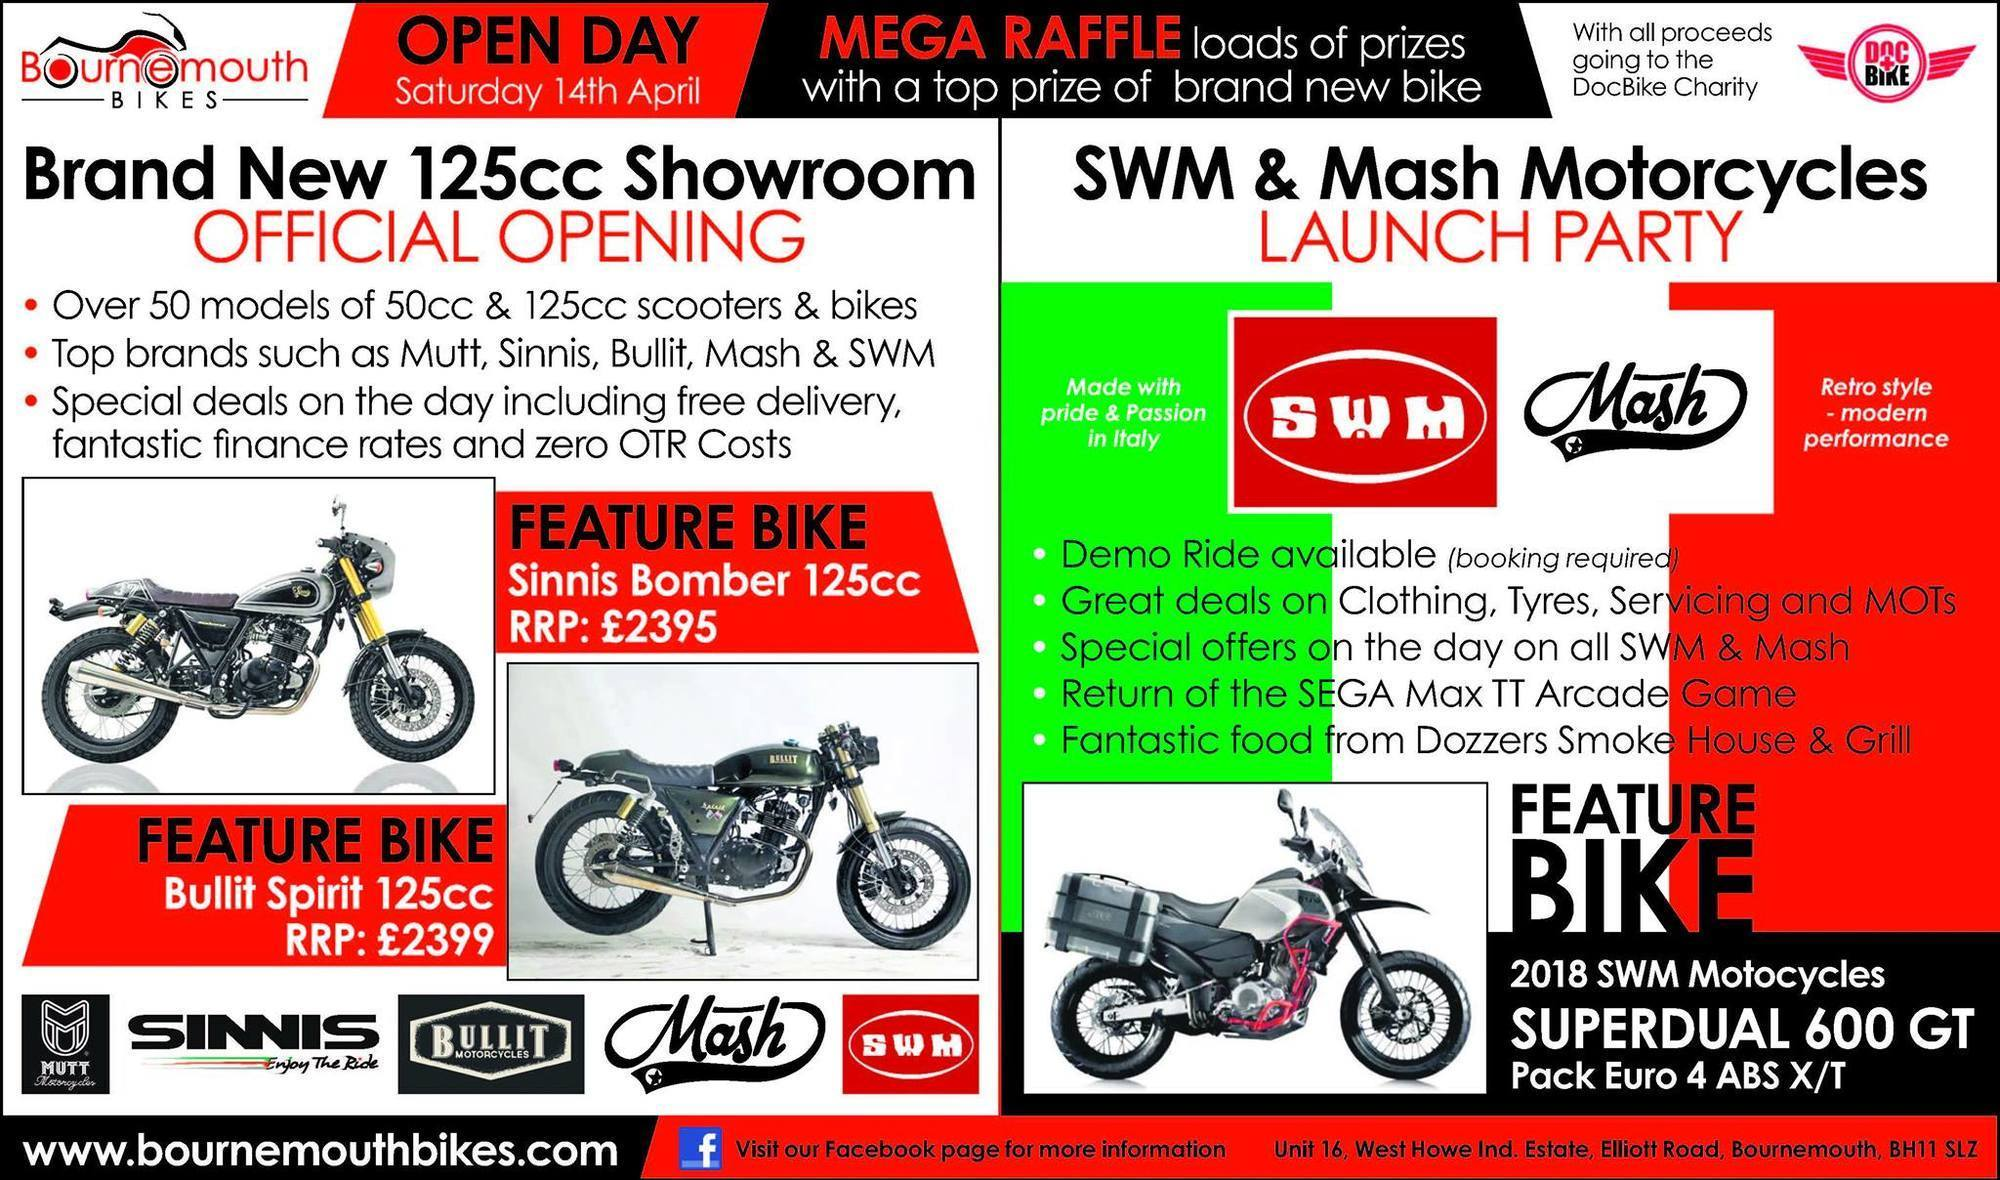 ... SWM Mash Launch Party, New Showroom Opening, Bournemouth Bikes, Free event ...